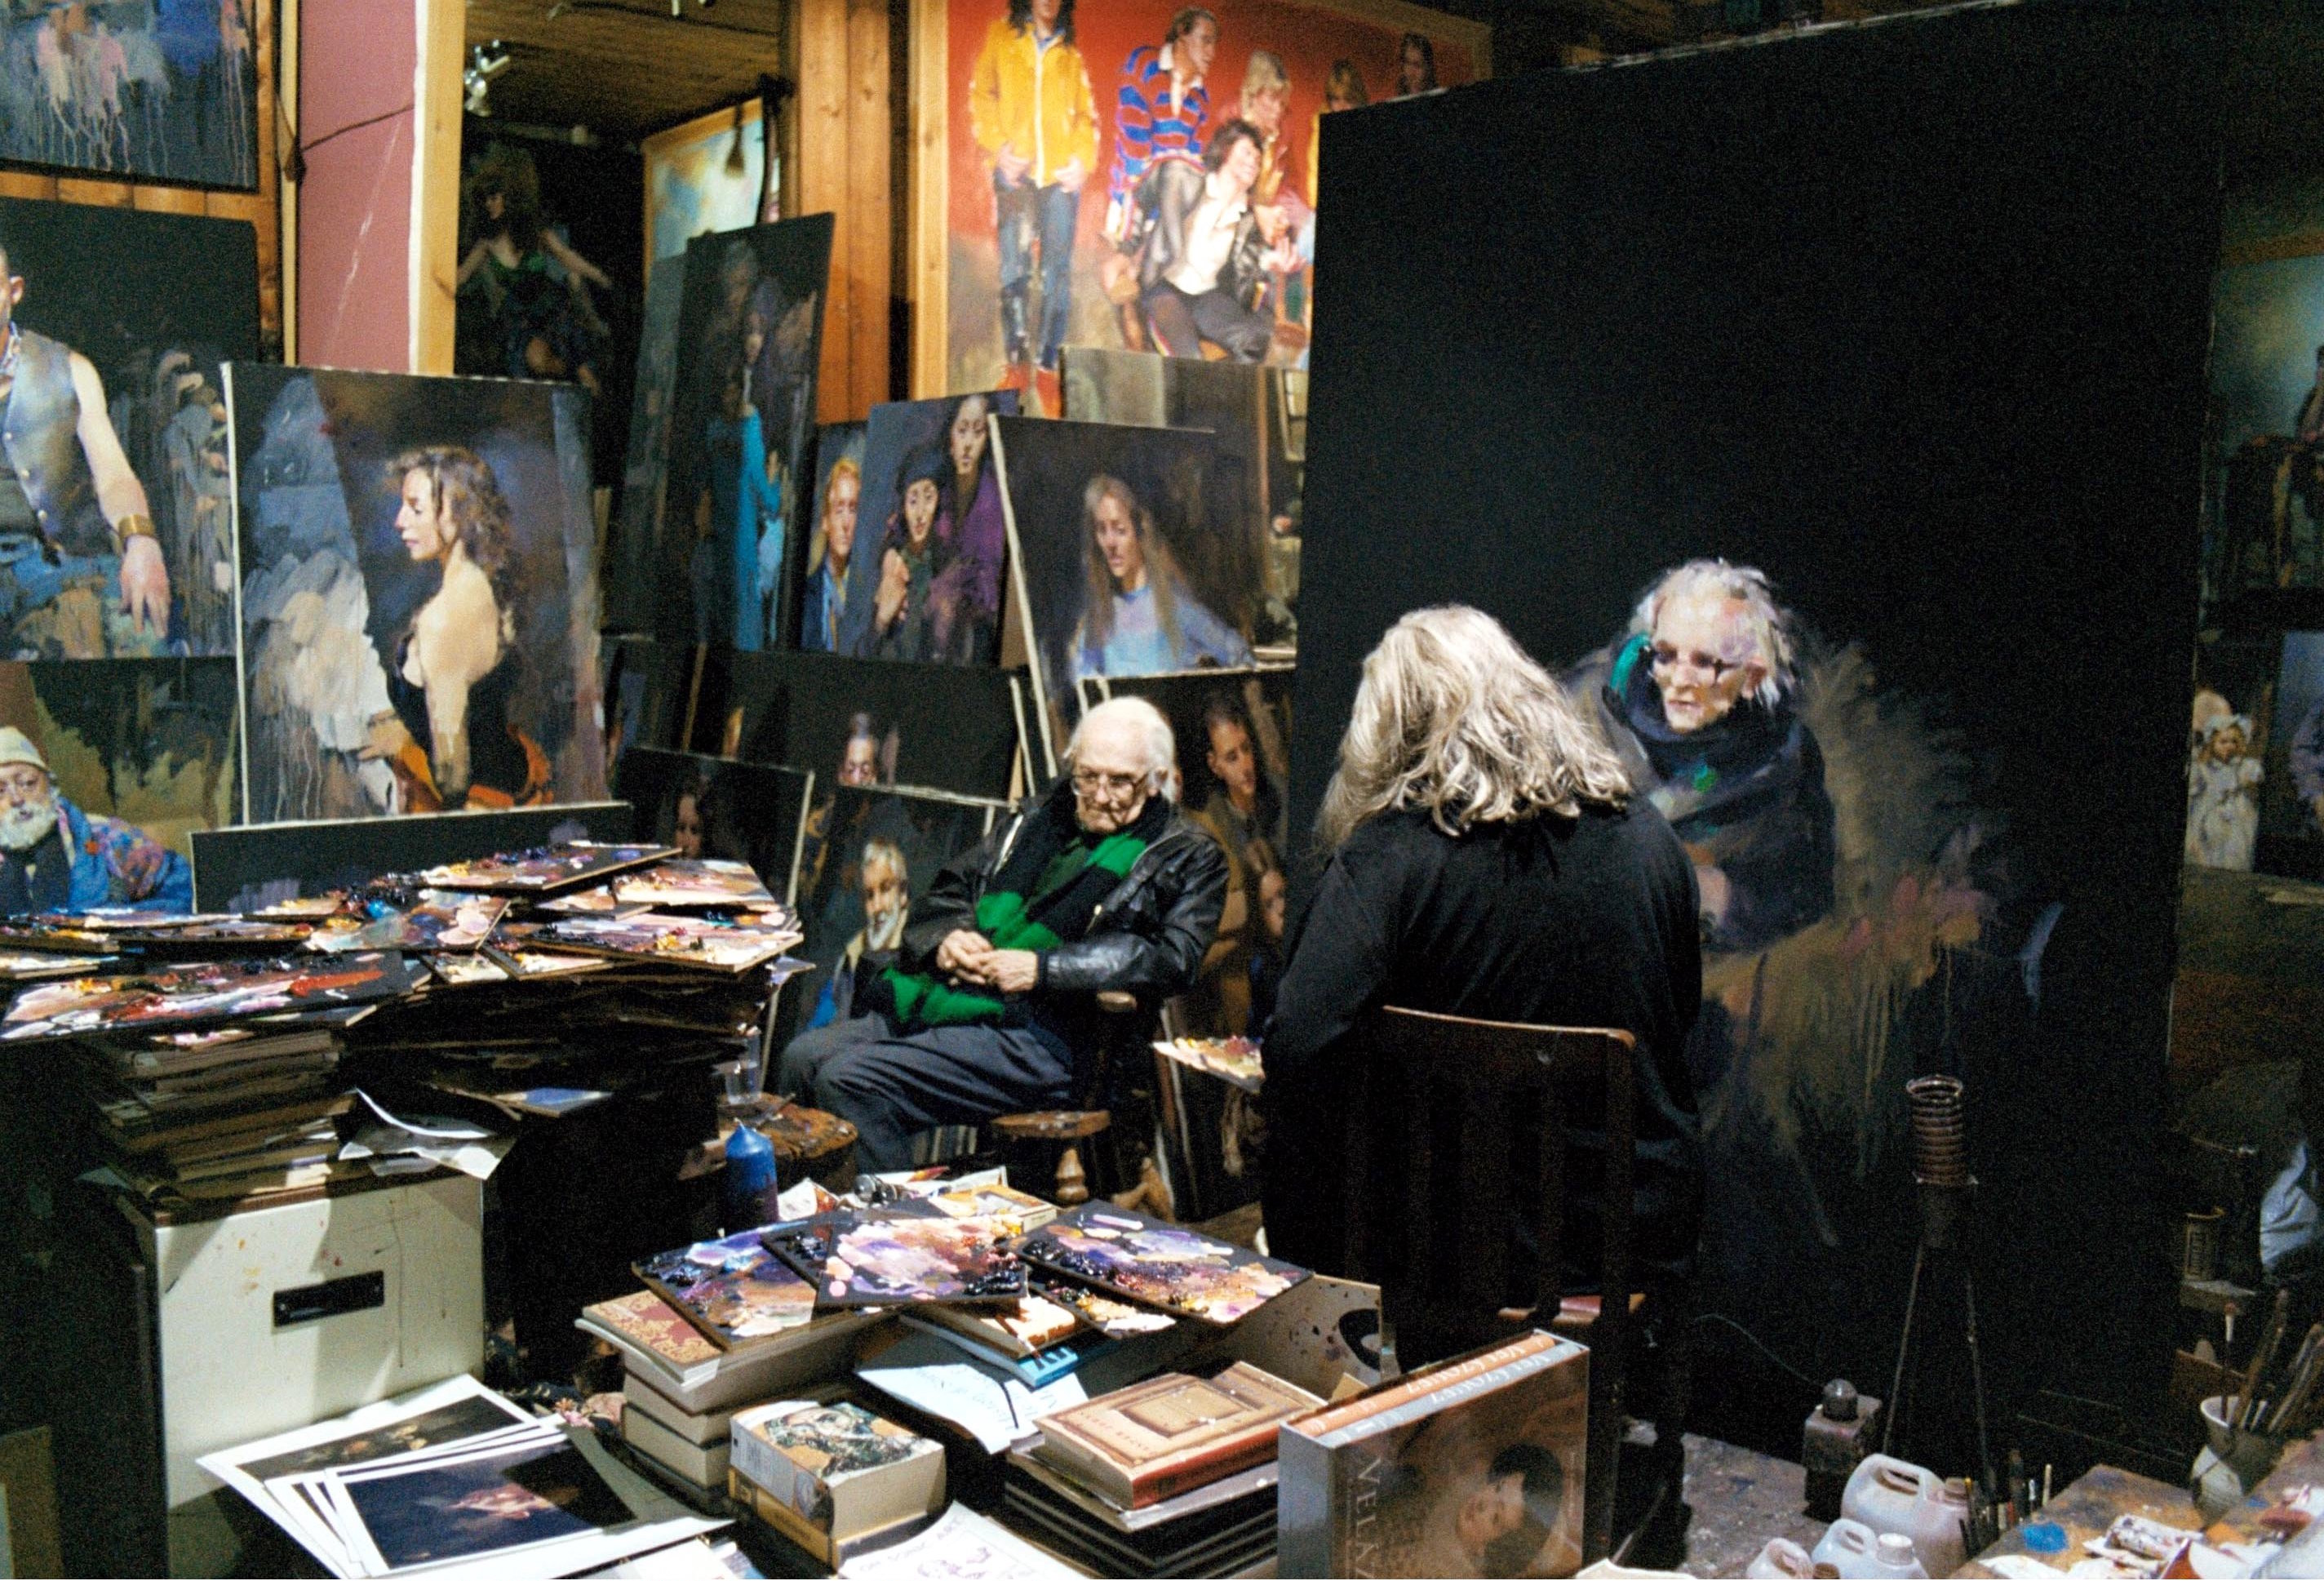 MICHAEL FOOT AND ROBERT LENKIEWICZ MICHAEL FOOT BEING PAINTED BY ARTIST ROBERT LENKIEWICZ IN HIS PLYMOUTH STUDIO. May 15, 2001